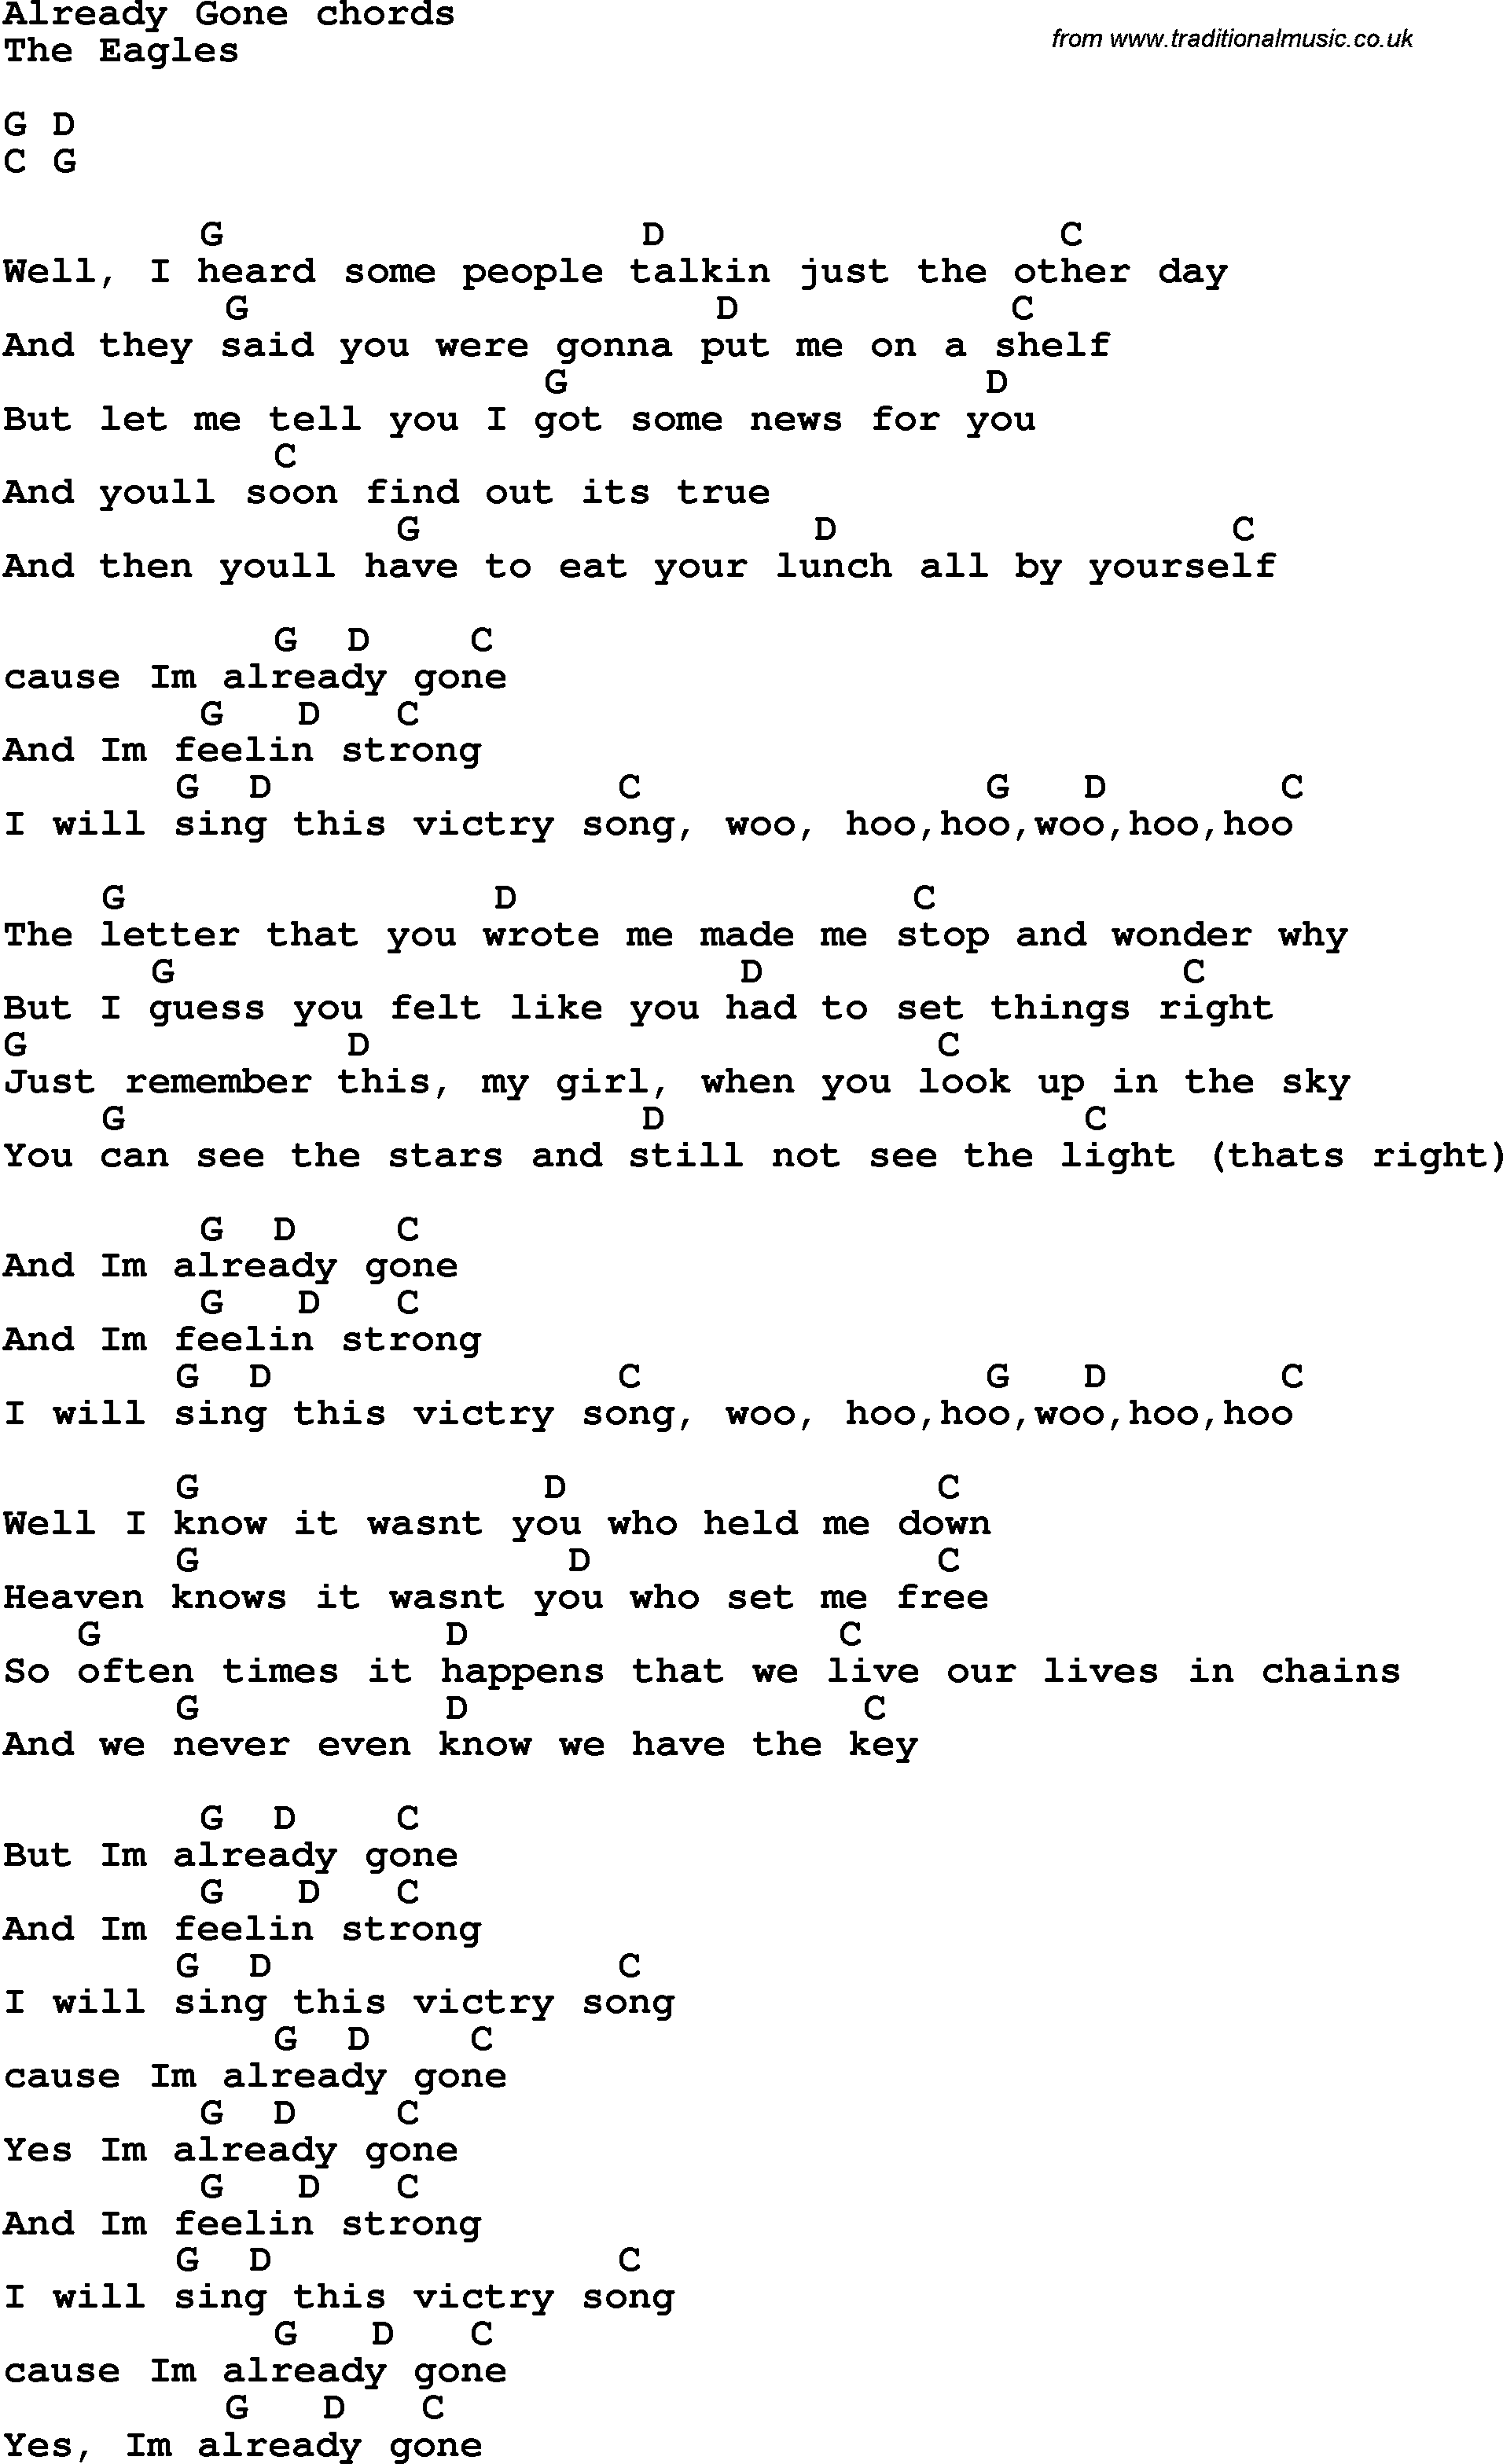 Song lyrics with guitar chords for already gone song lyrics with guitar chords for already gone hexwebz Image collections